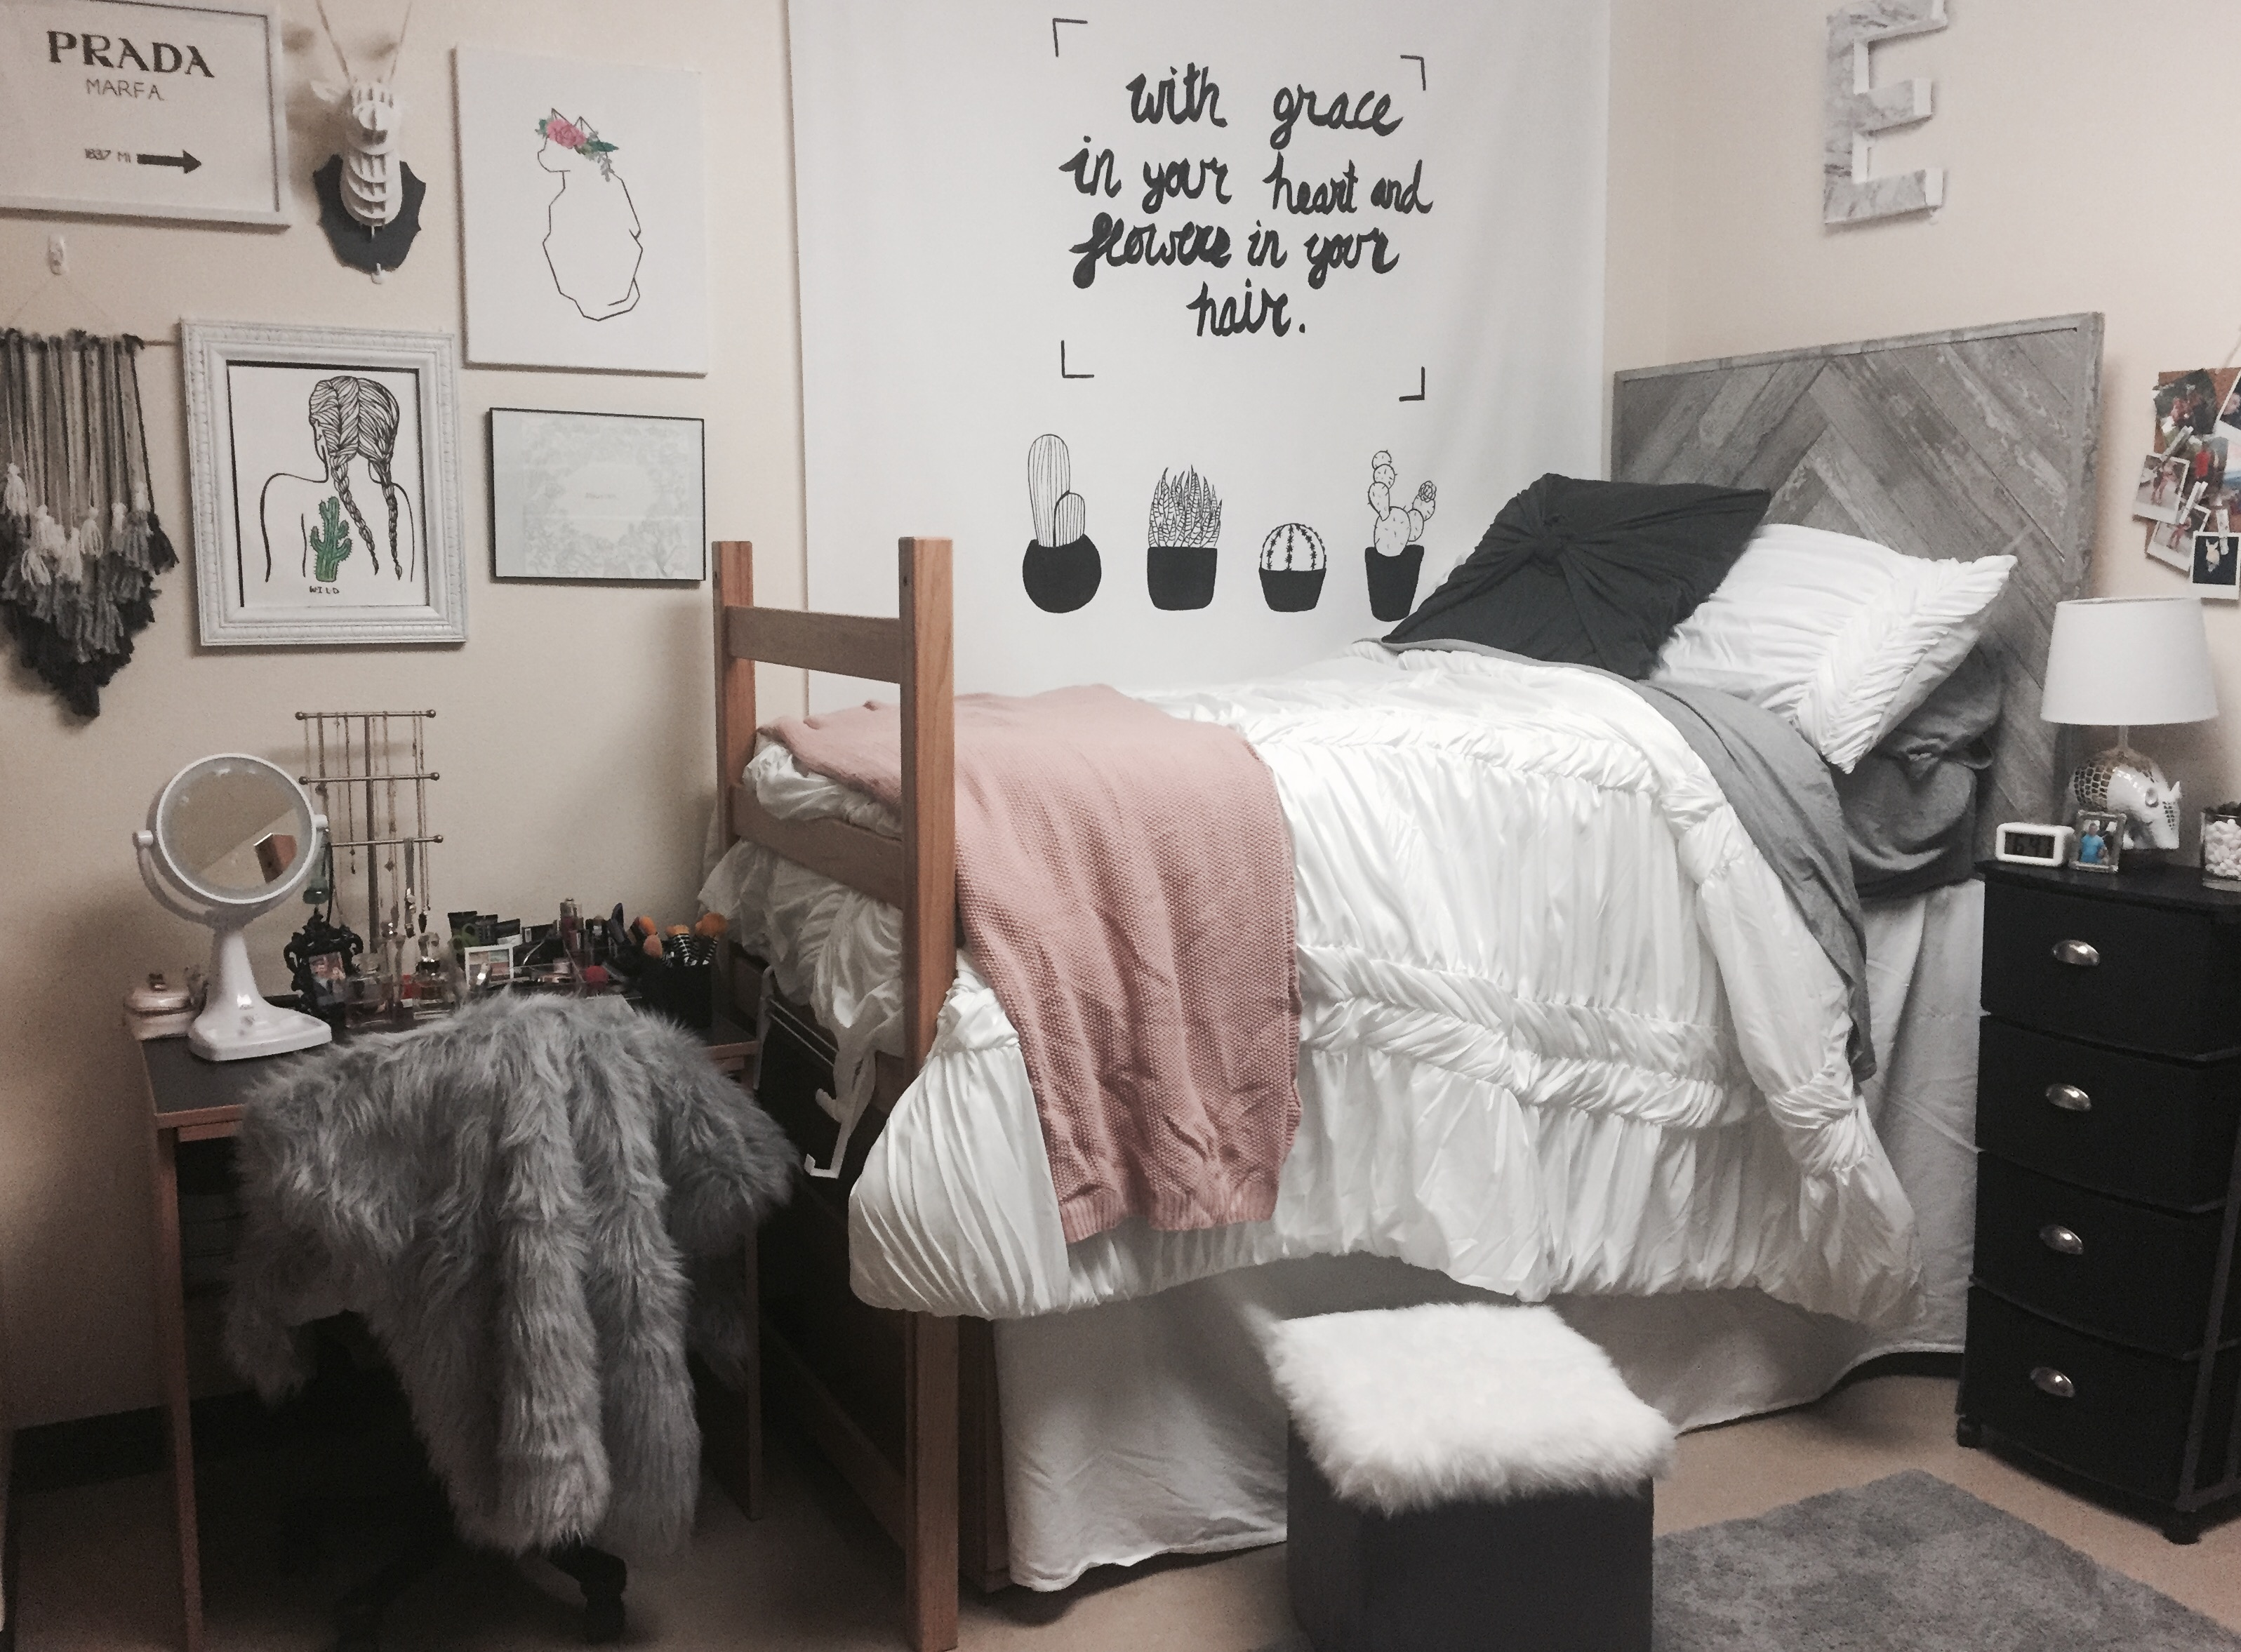 Fall Rug Wallpaper Creative Dorm Room Ideas To Make Your Space More Cozy